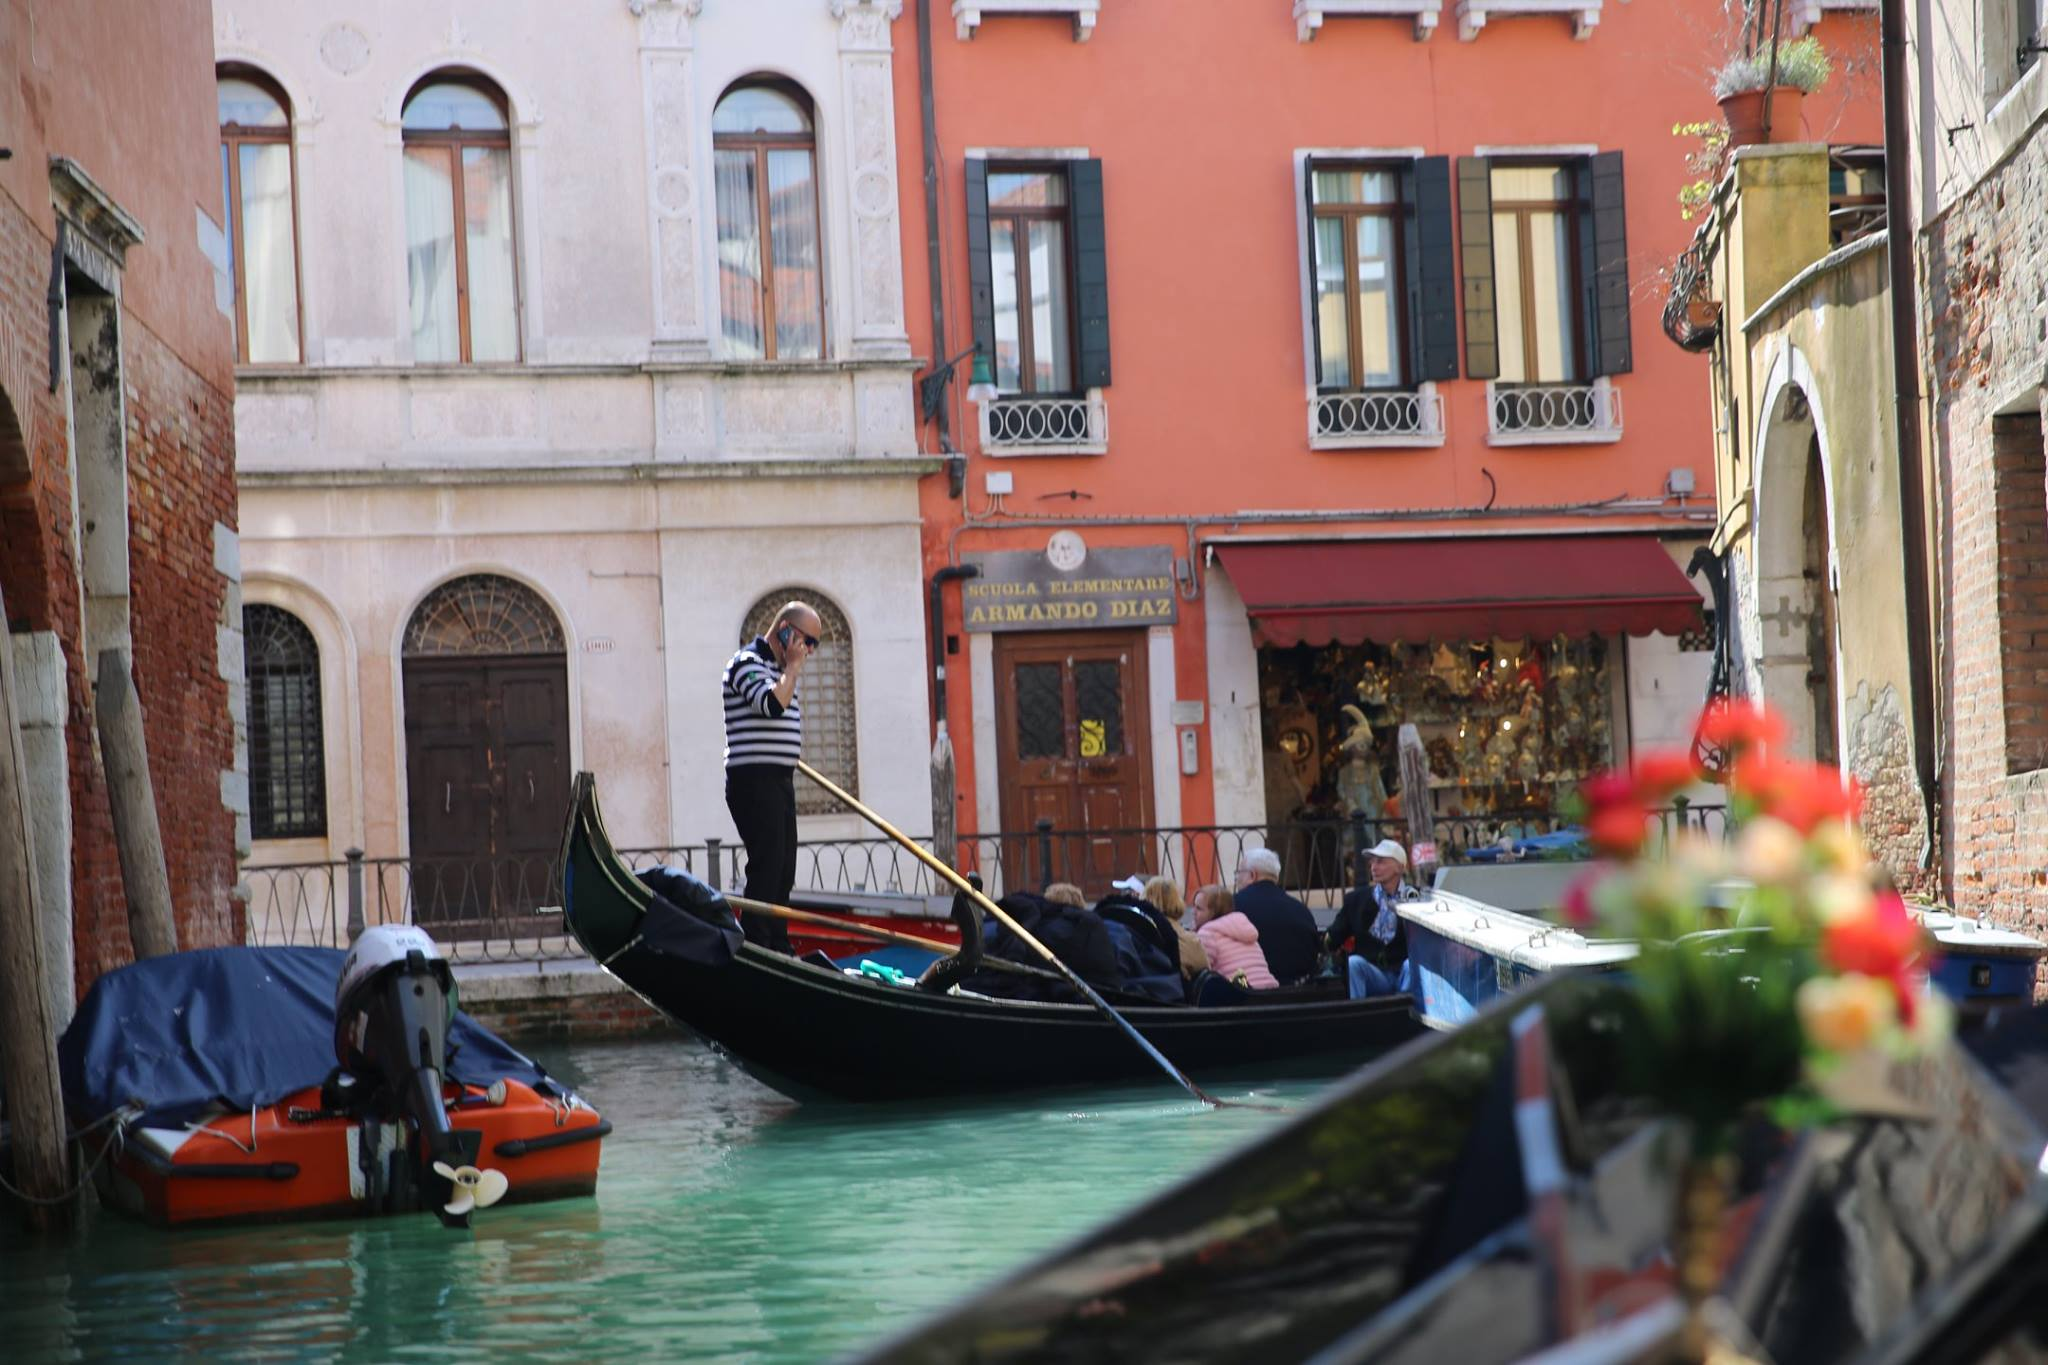 This was NOT our gondola experience. Our gondalier was present, singing, laughing, smiling, taught us the traditional calls when he went around corners, and we saw the quiet canals where we were often the only gondola around. It was perfect.